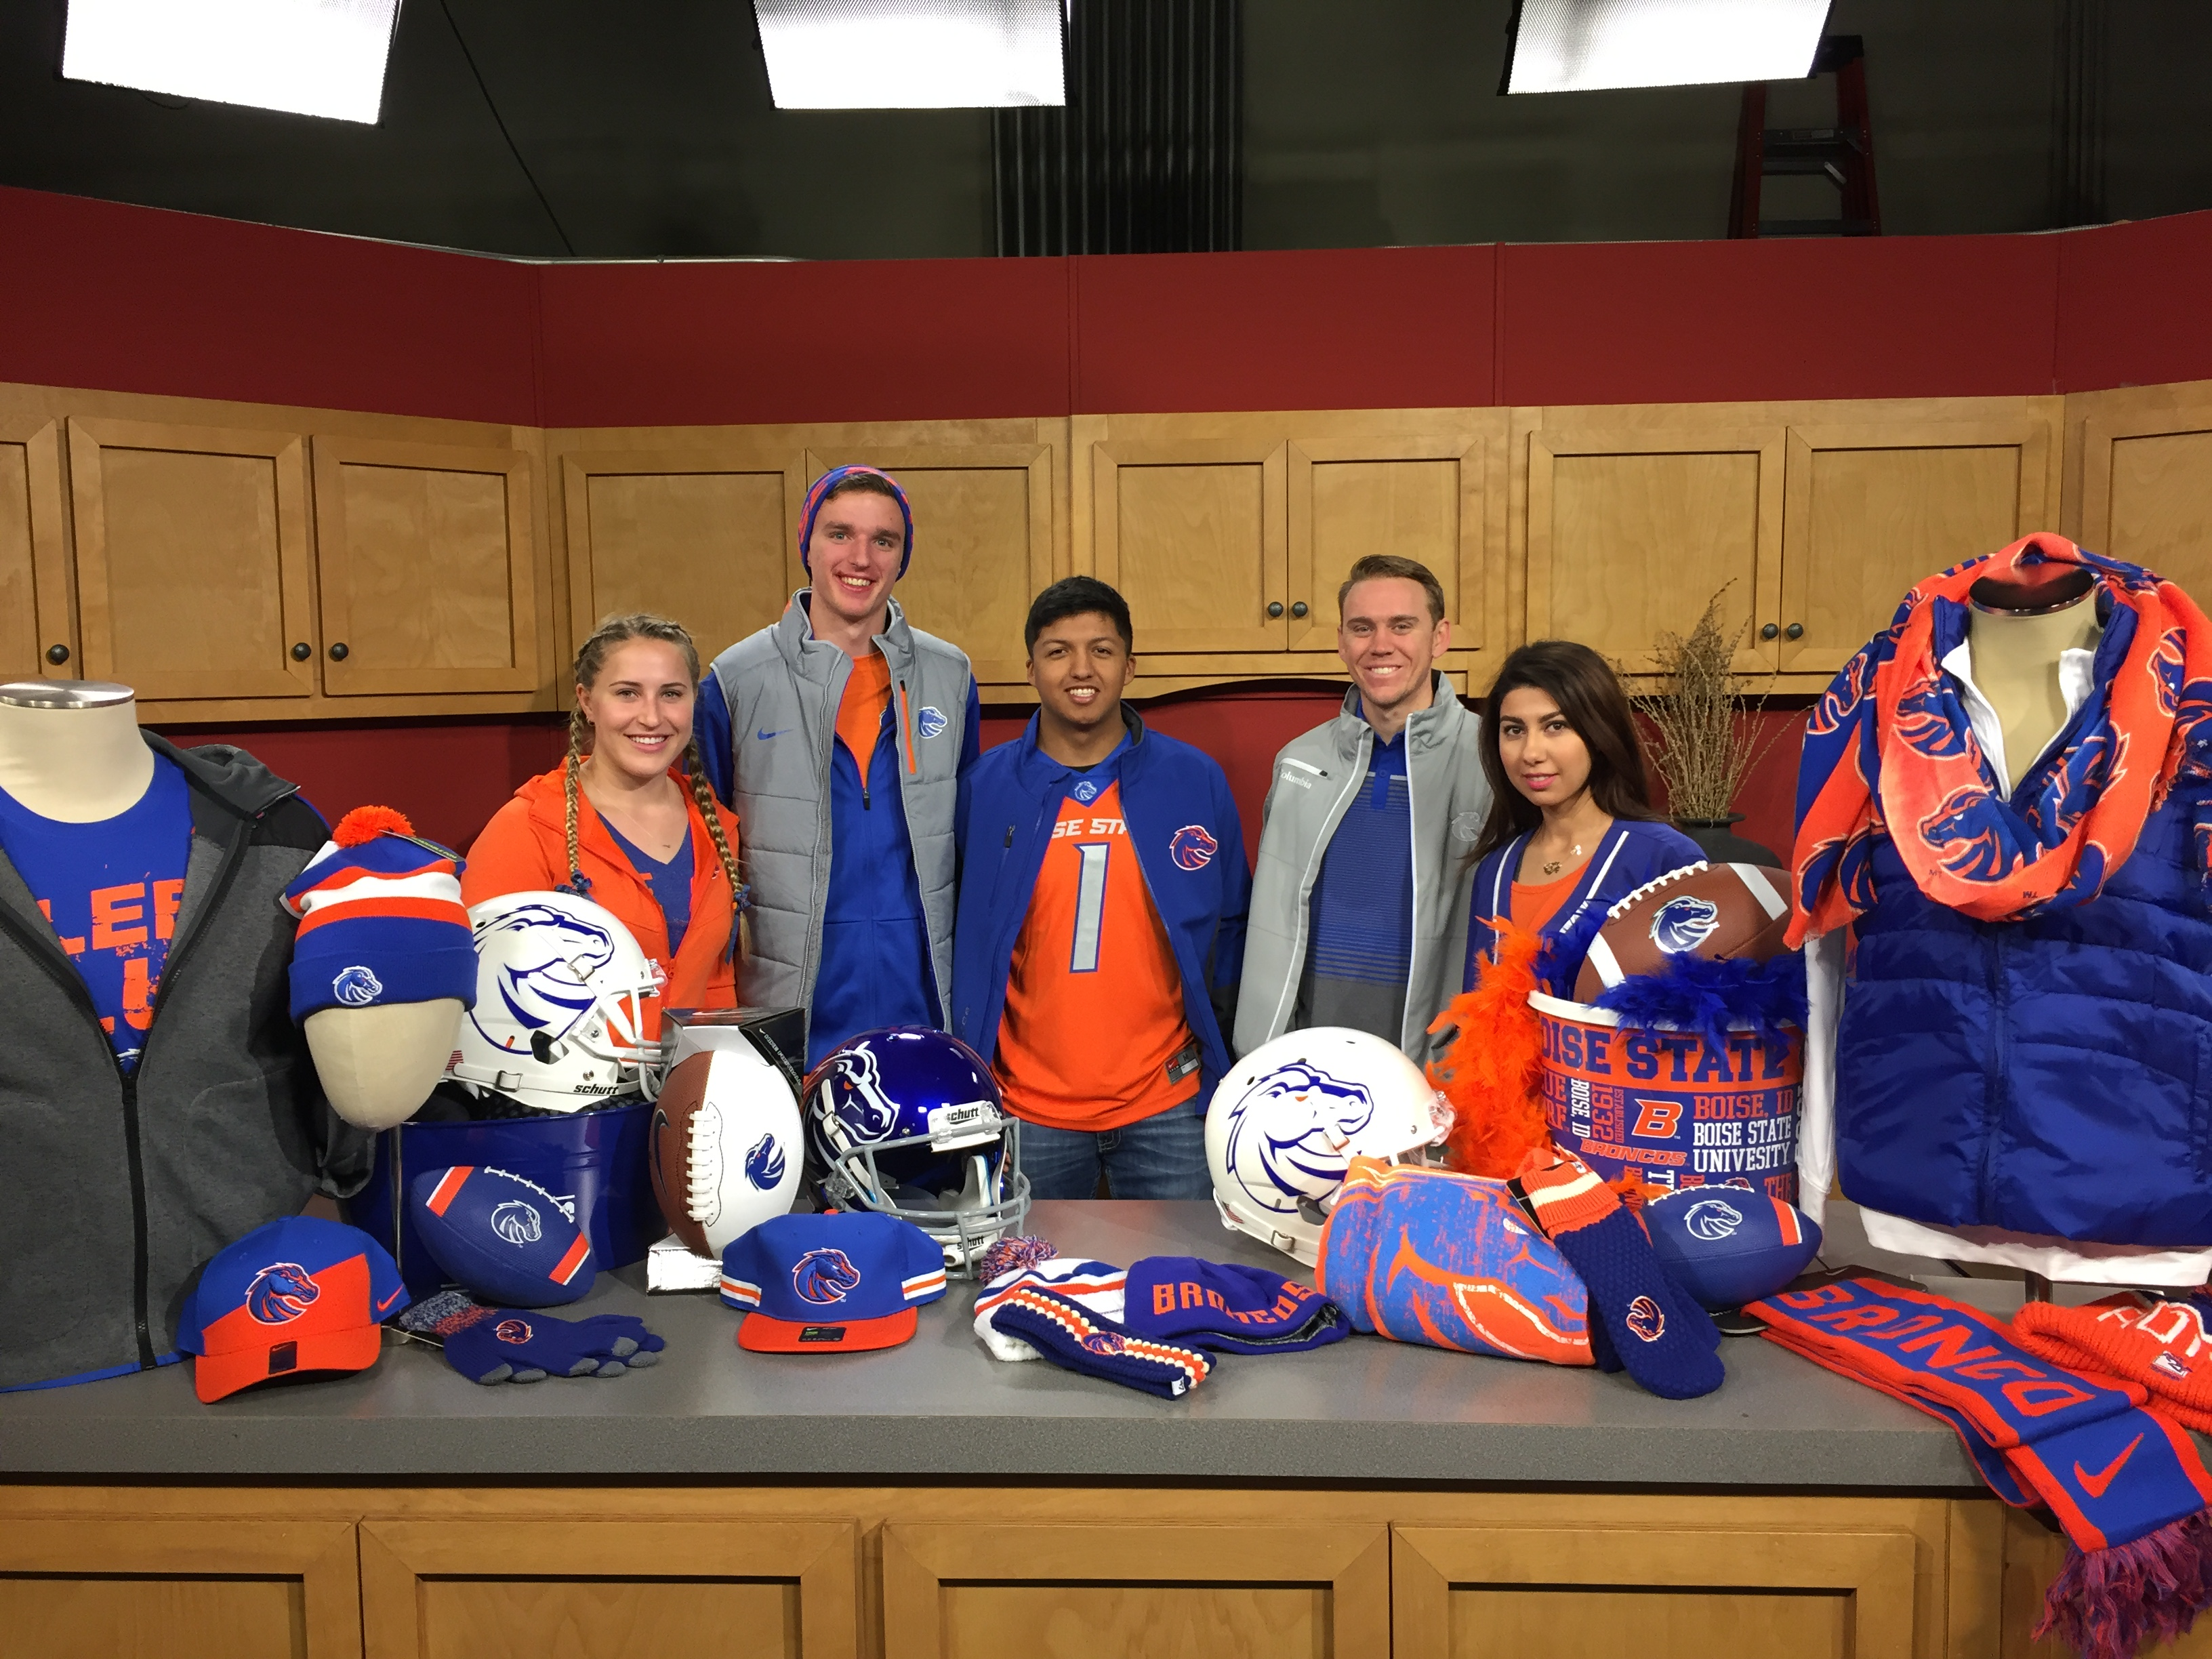 Bronco shop on ktvb bronco shop on ktvb group